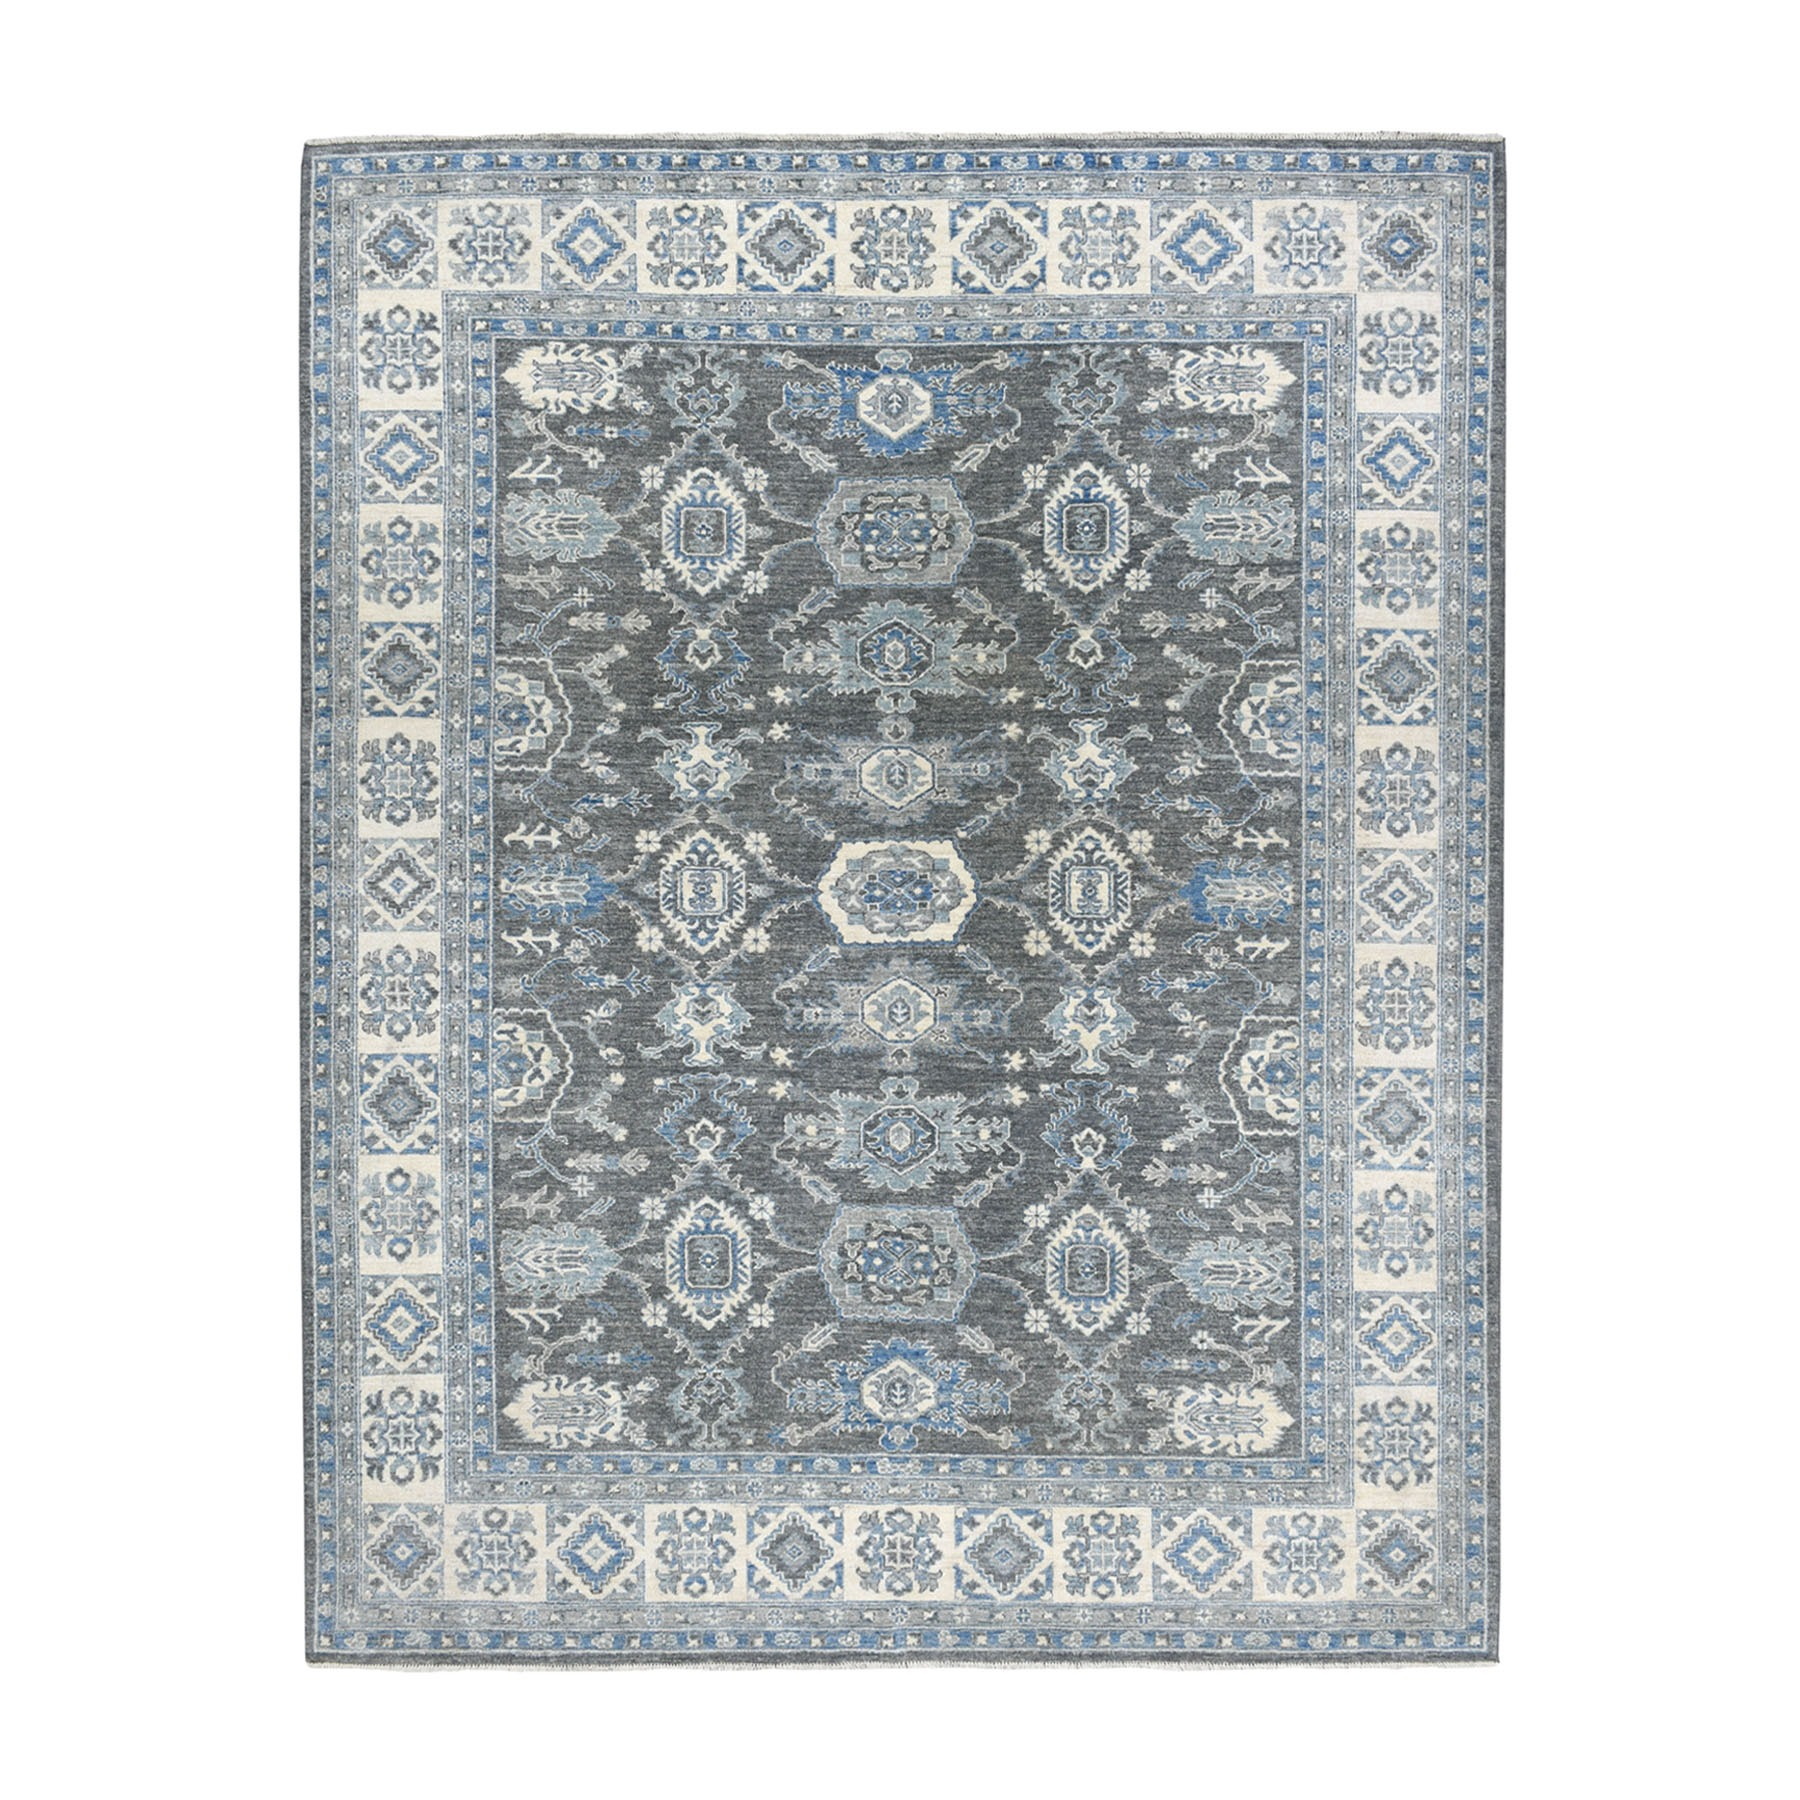 "8'2""X10' Gray Pure Wool Hand-Knotted Peshawar With Karajeh Design Oriental Rug moaeadb7"